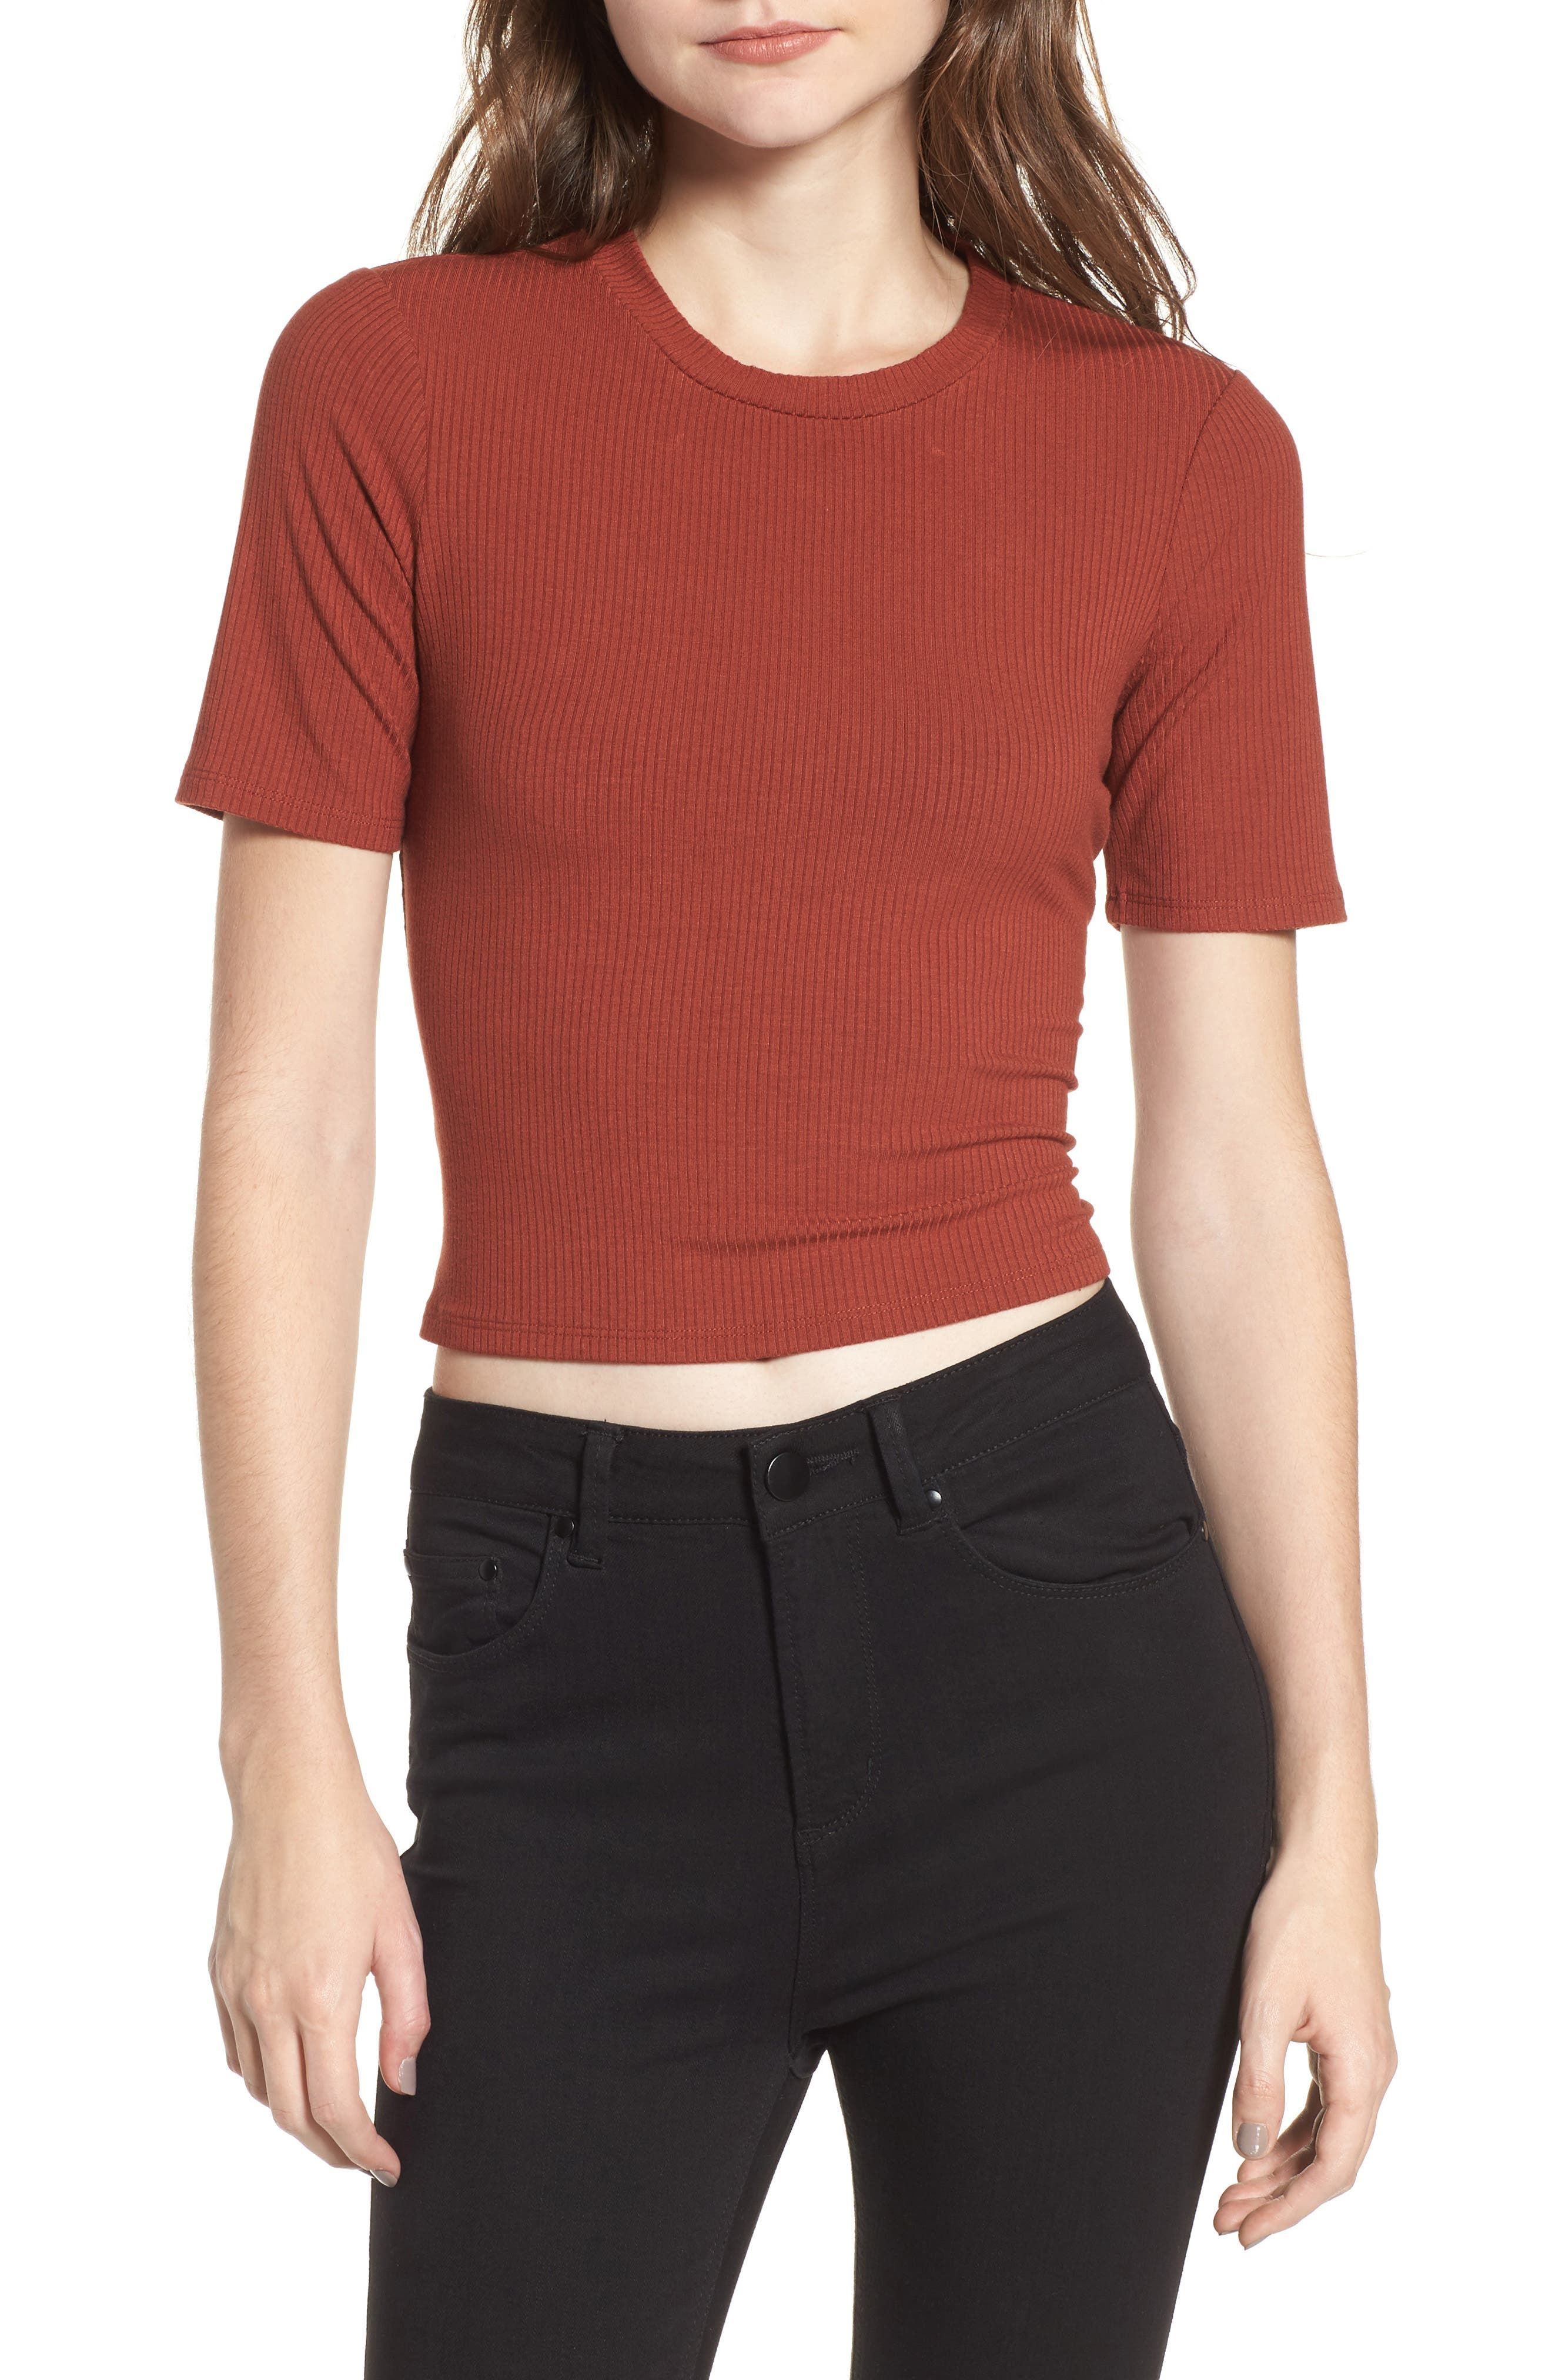 Main Image - AFRM Lace Back Ribbed Crop Top